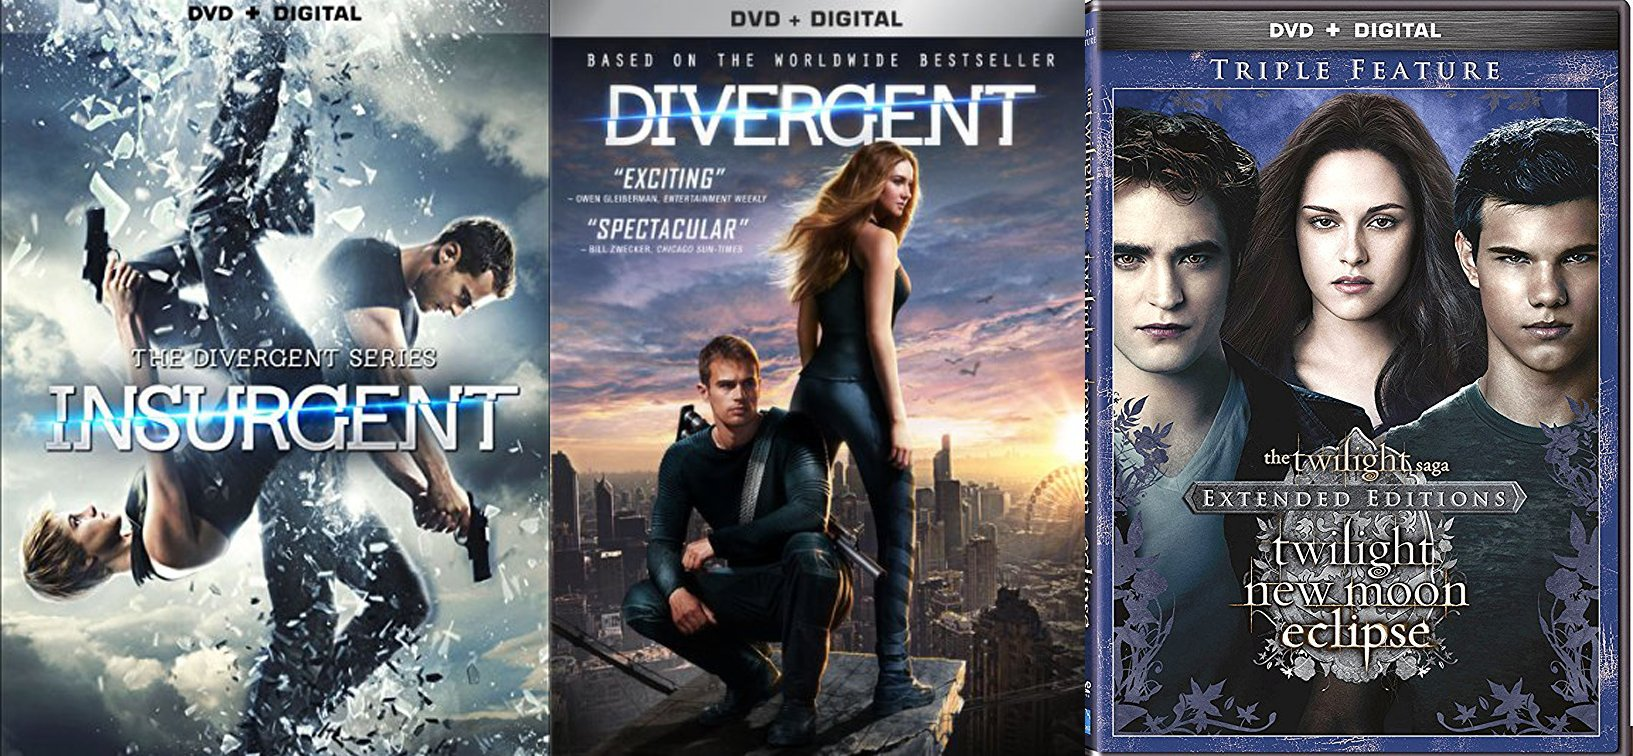 The Twilight Saga: Extended Edition Triple Feature New Moon / Eclipse DVD + Divergent Series Movie + Insurgent - 5 Disc collection by Lionsgate